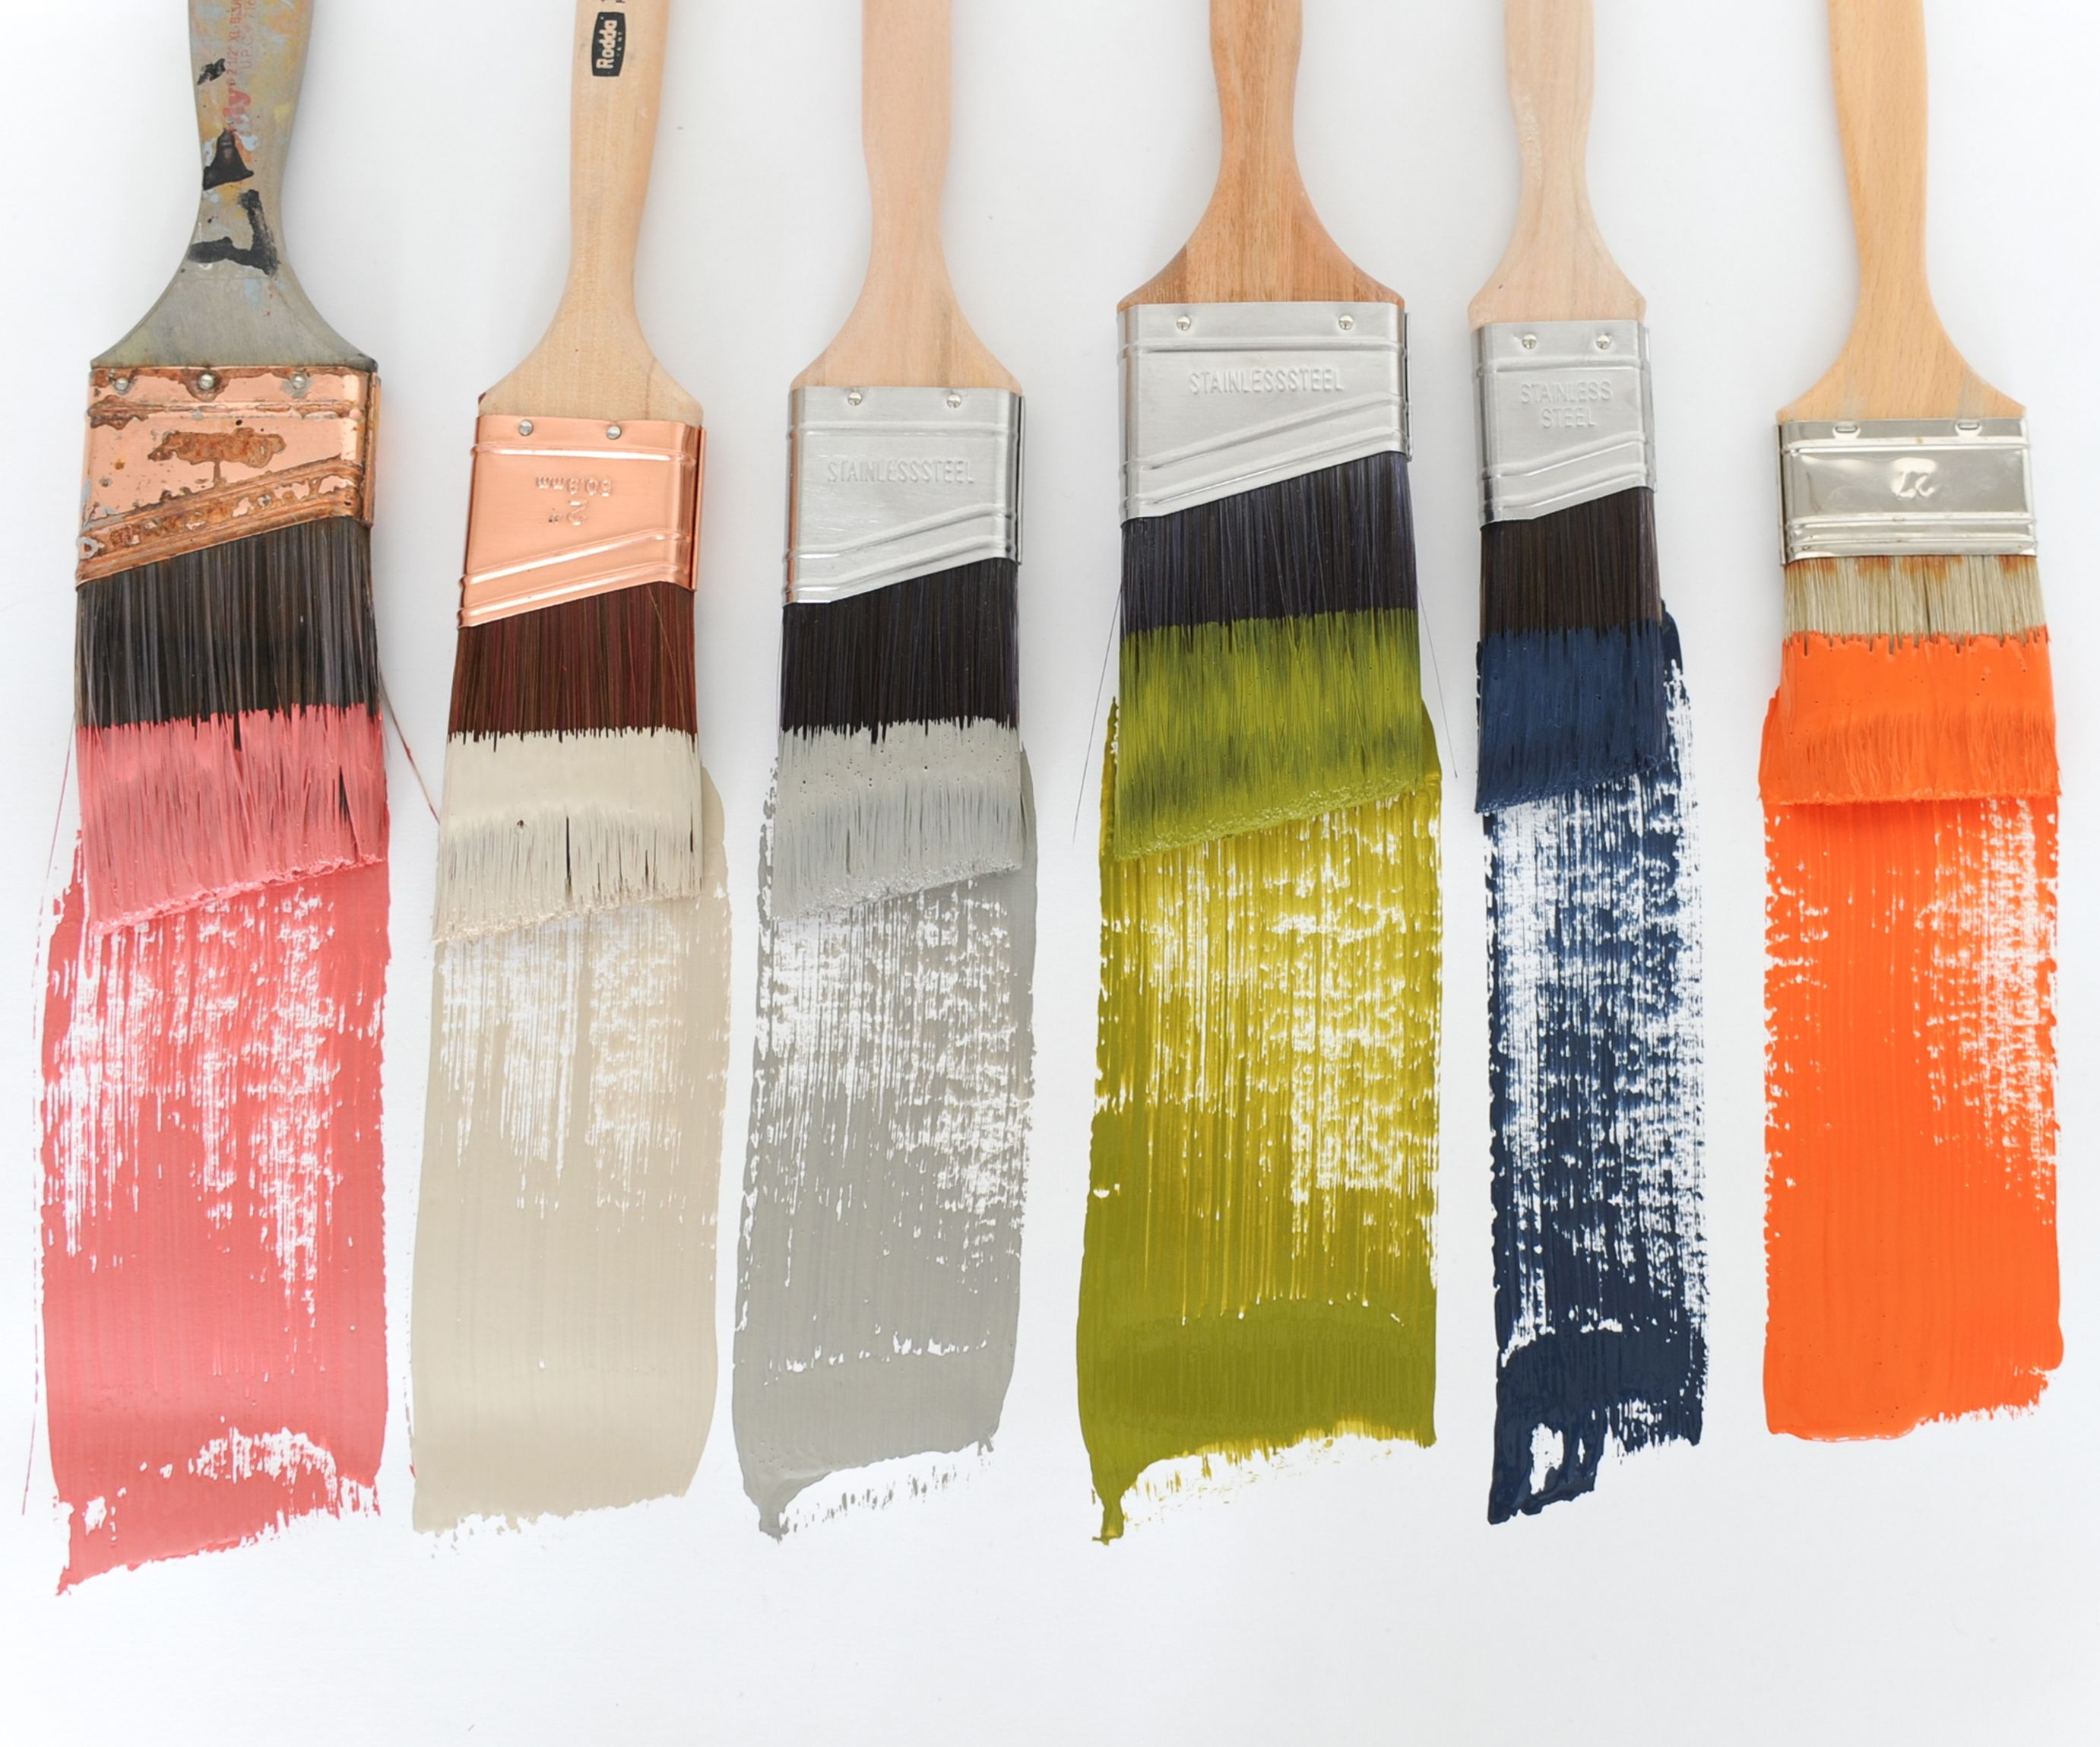 Canadian designer Amanda Forrest has partnered with the FAT Paint